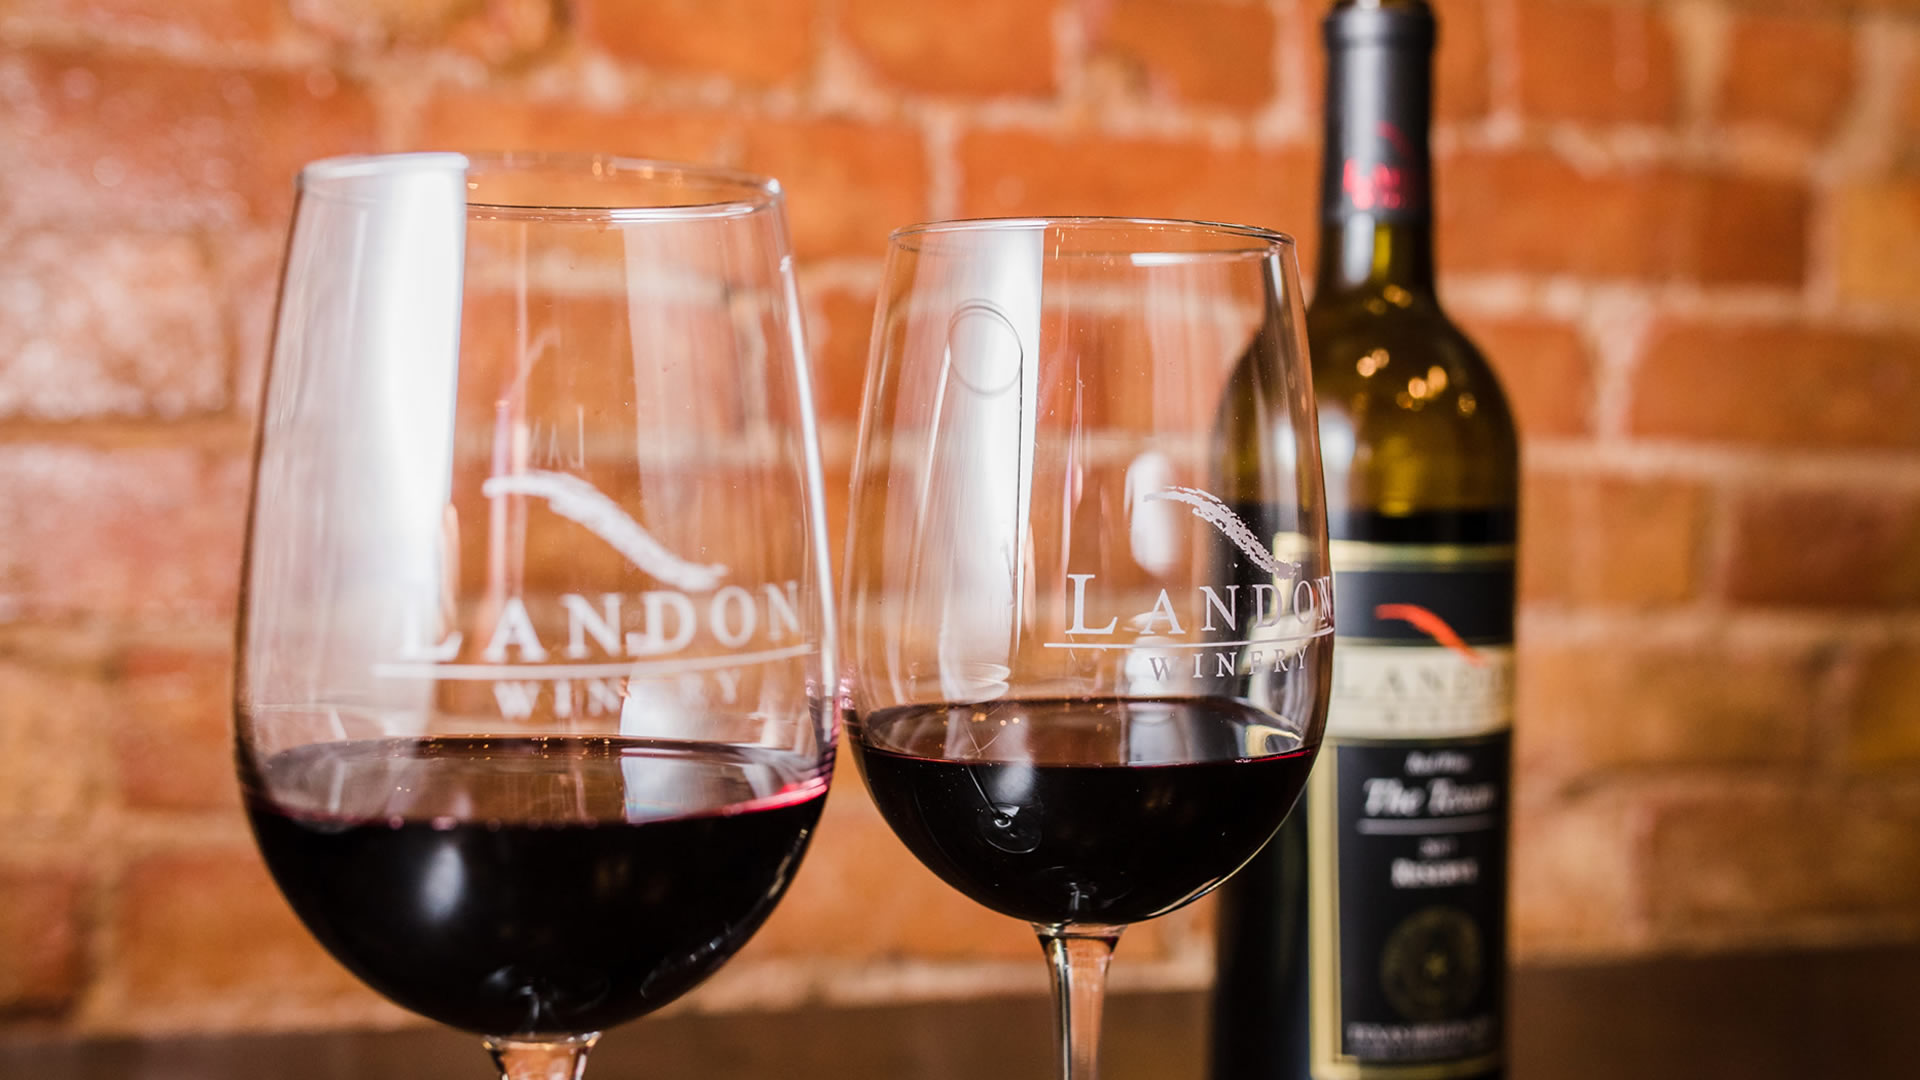 Join us for a glass of local wine at Landon Winery